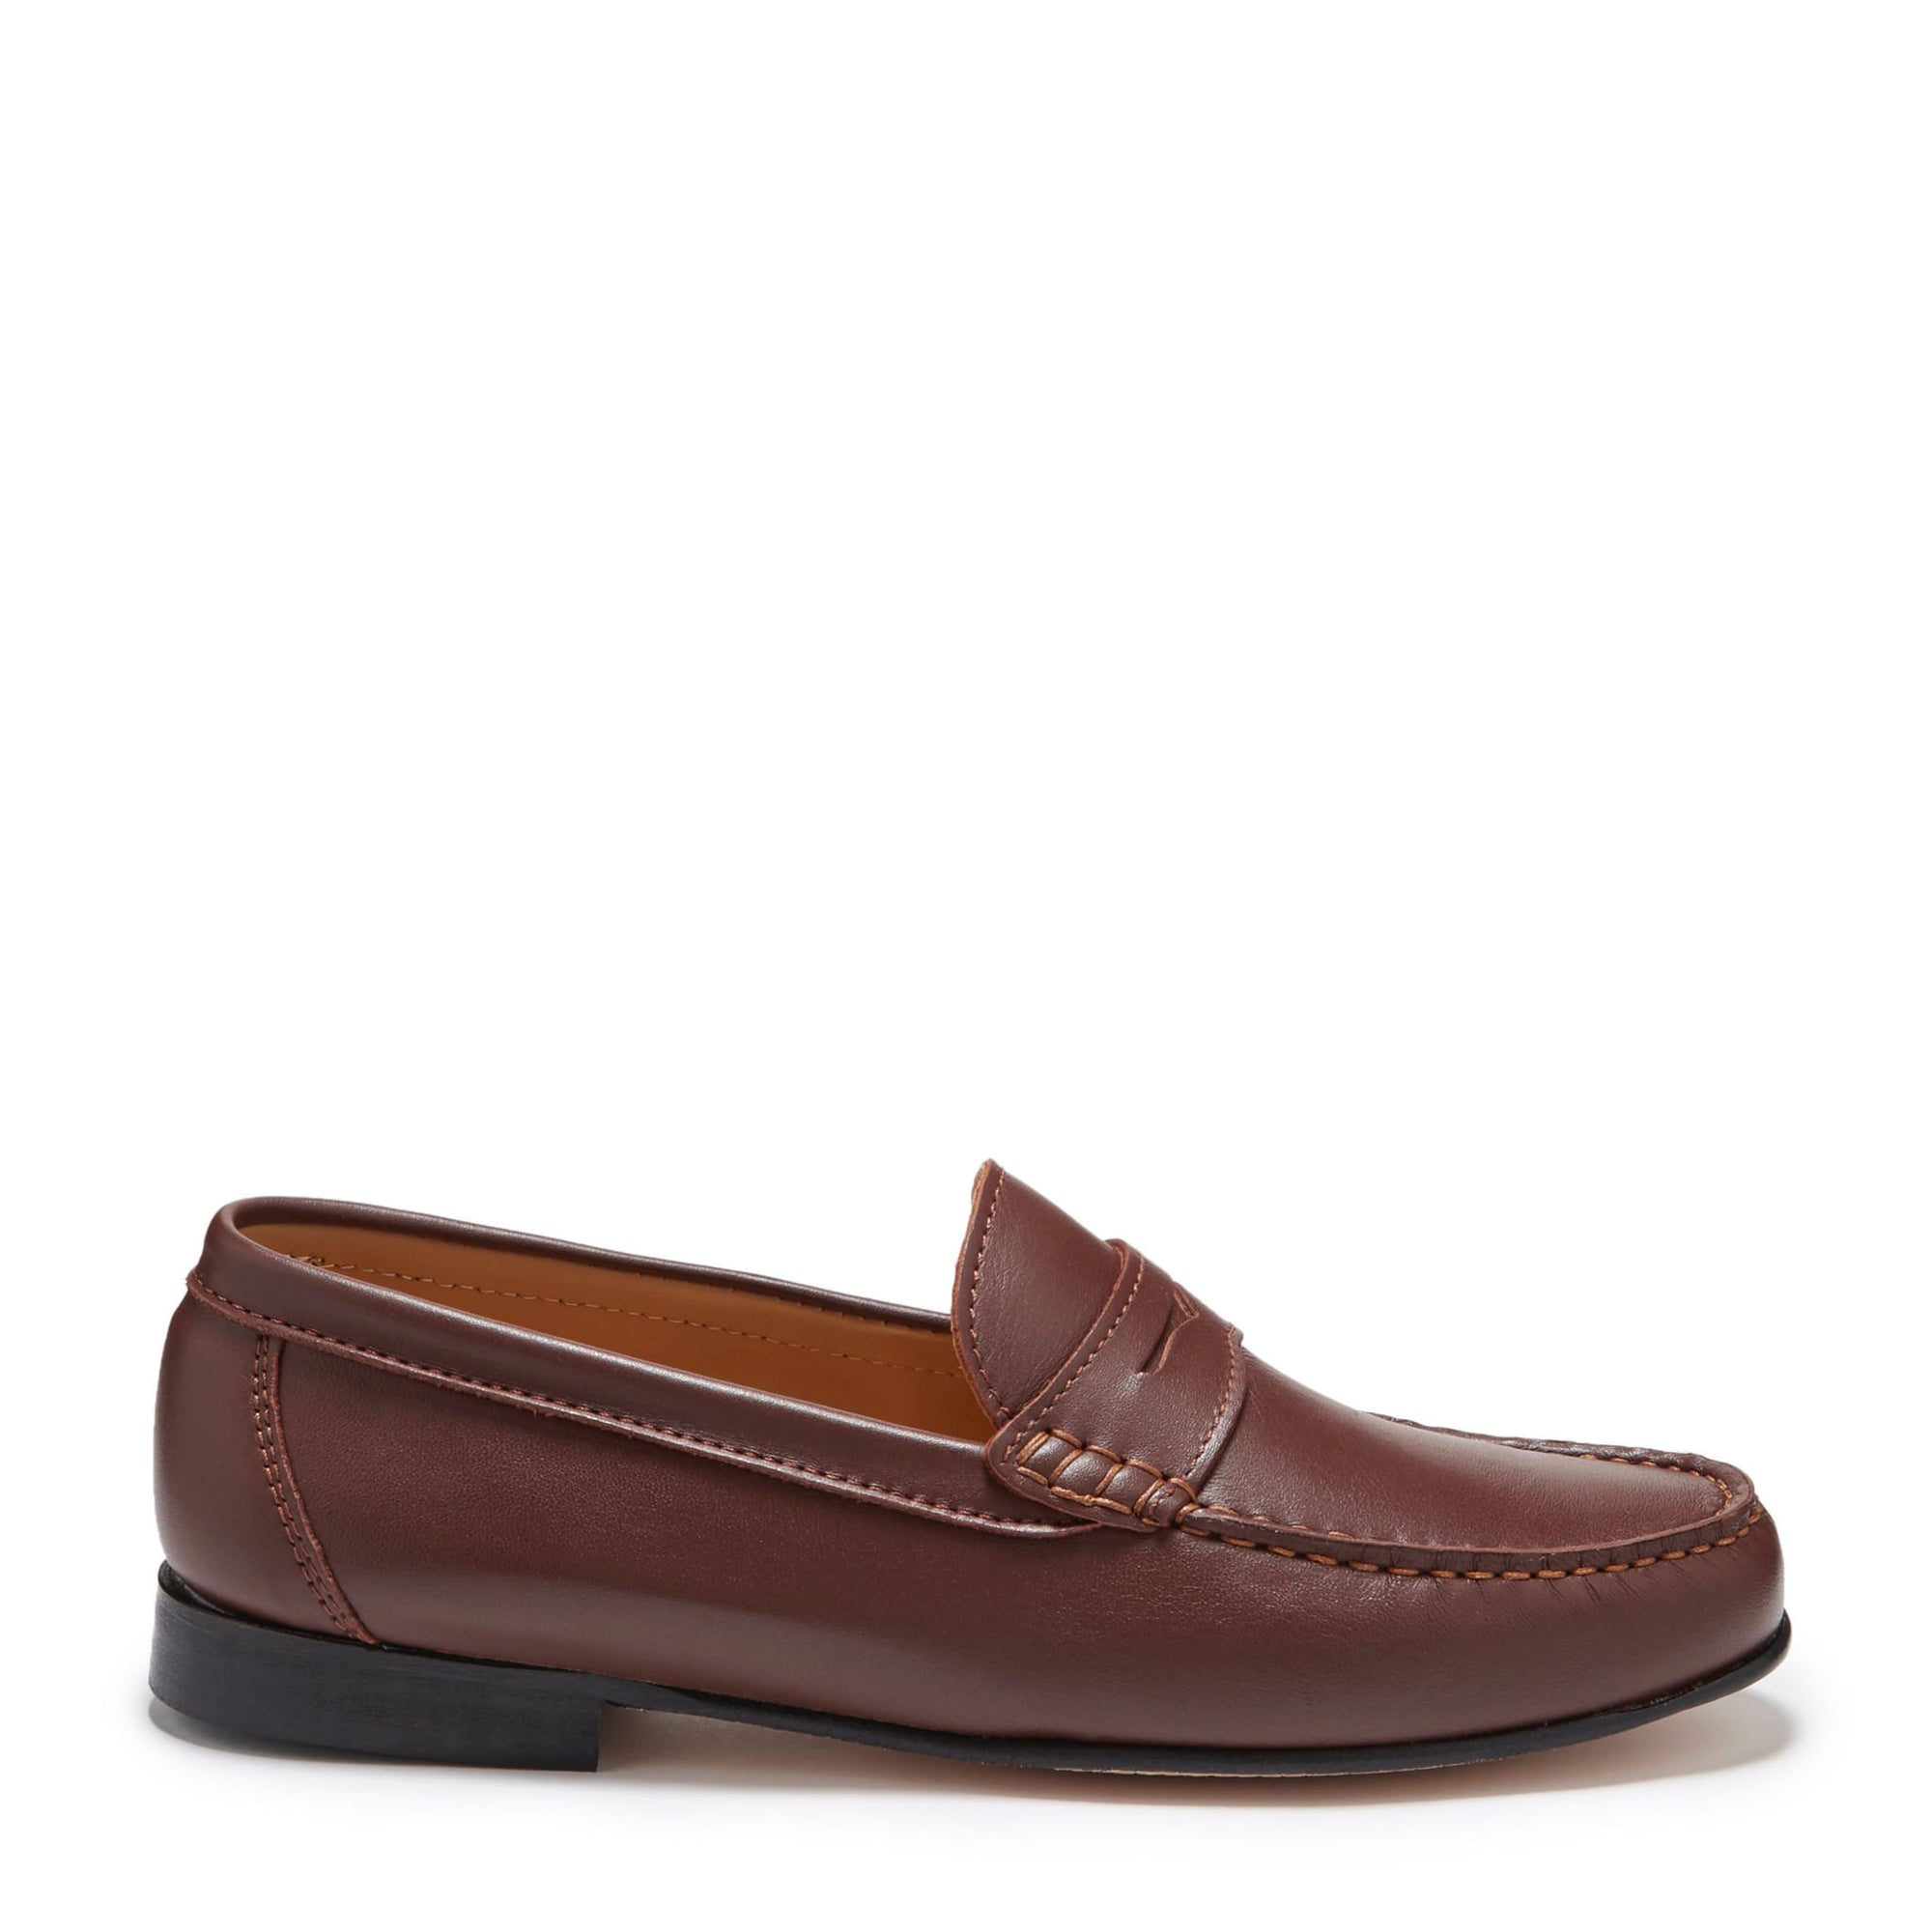 Brown Leather Loafers, Leather Sole Side